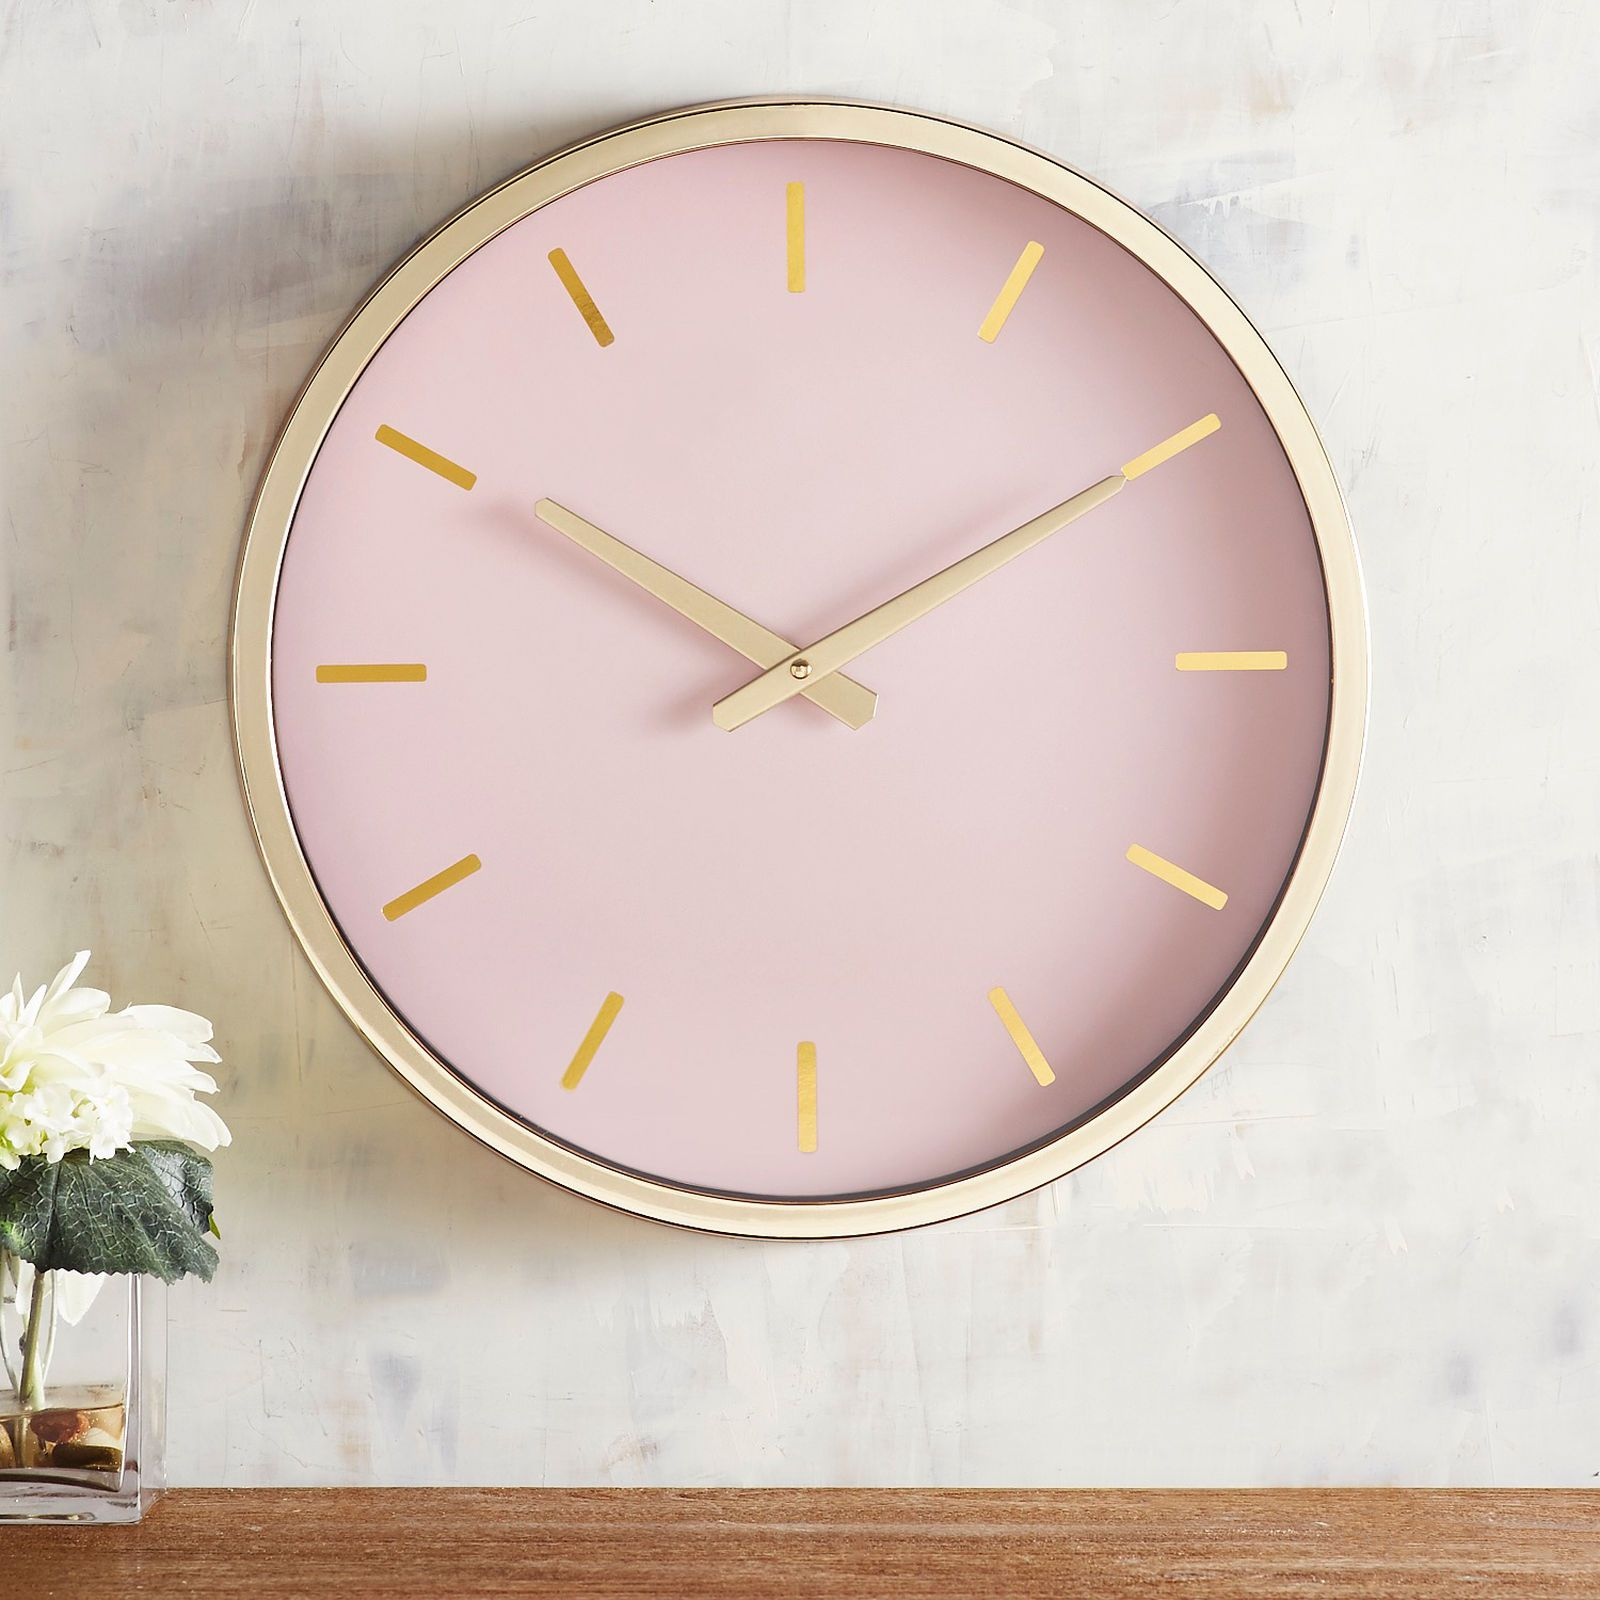 Our Understatedly Elegant Wall Clock Is A Timepiece For Grown Ups